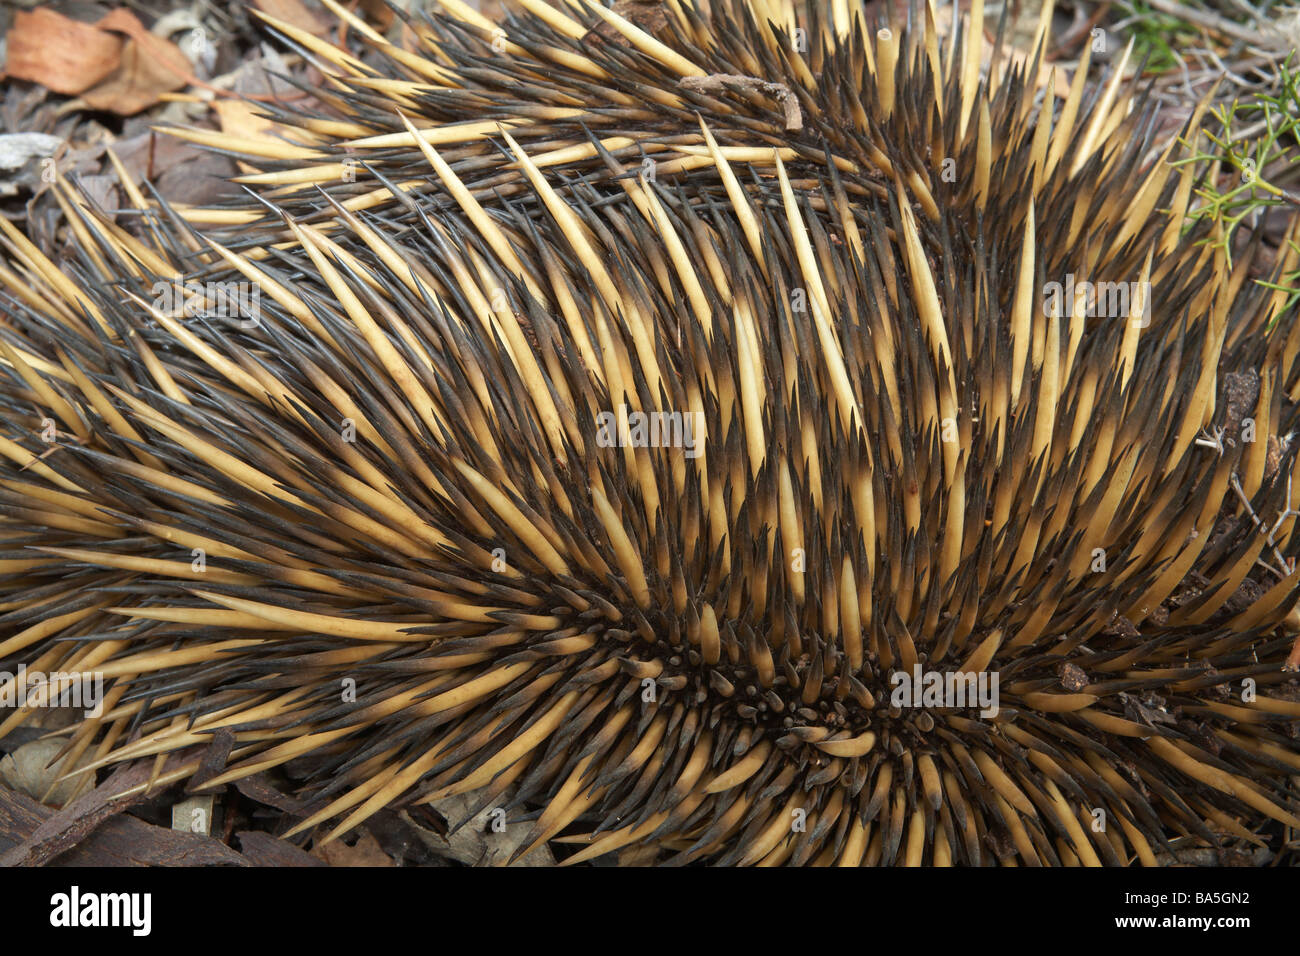 Abstract study of the spines or quills on an Australian Echidna. Tachyglossus aculeatus Stock Photo